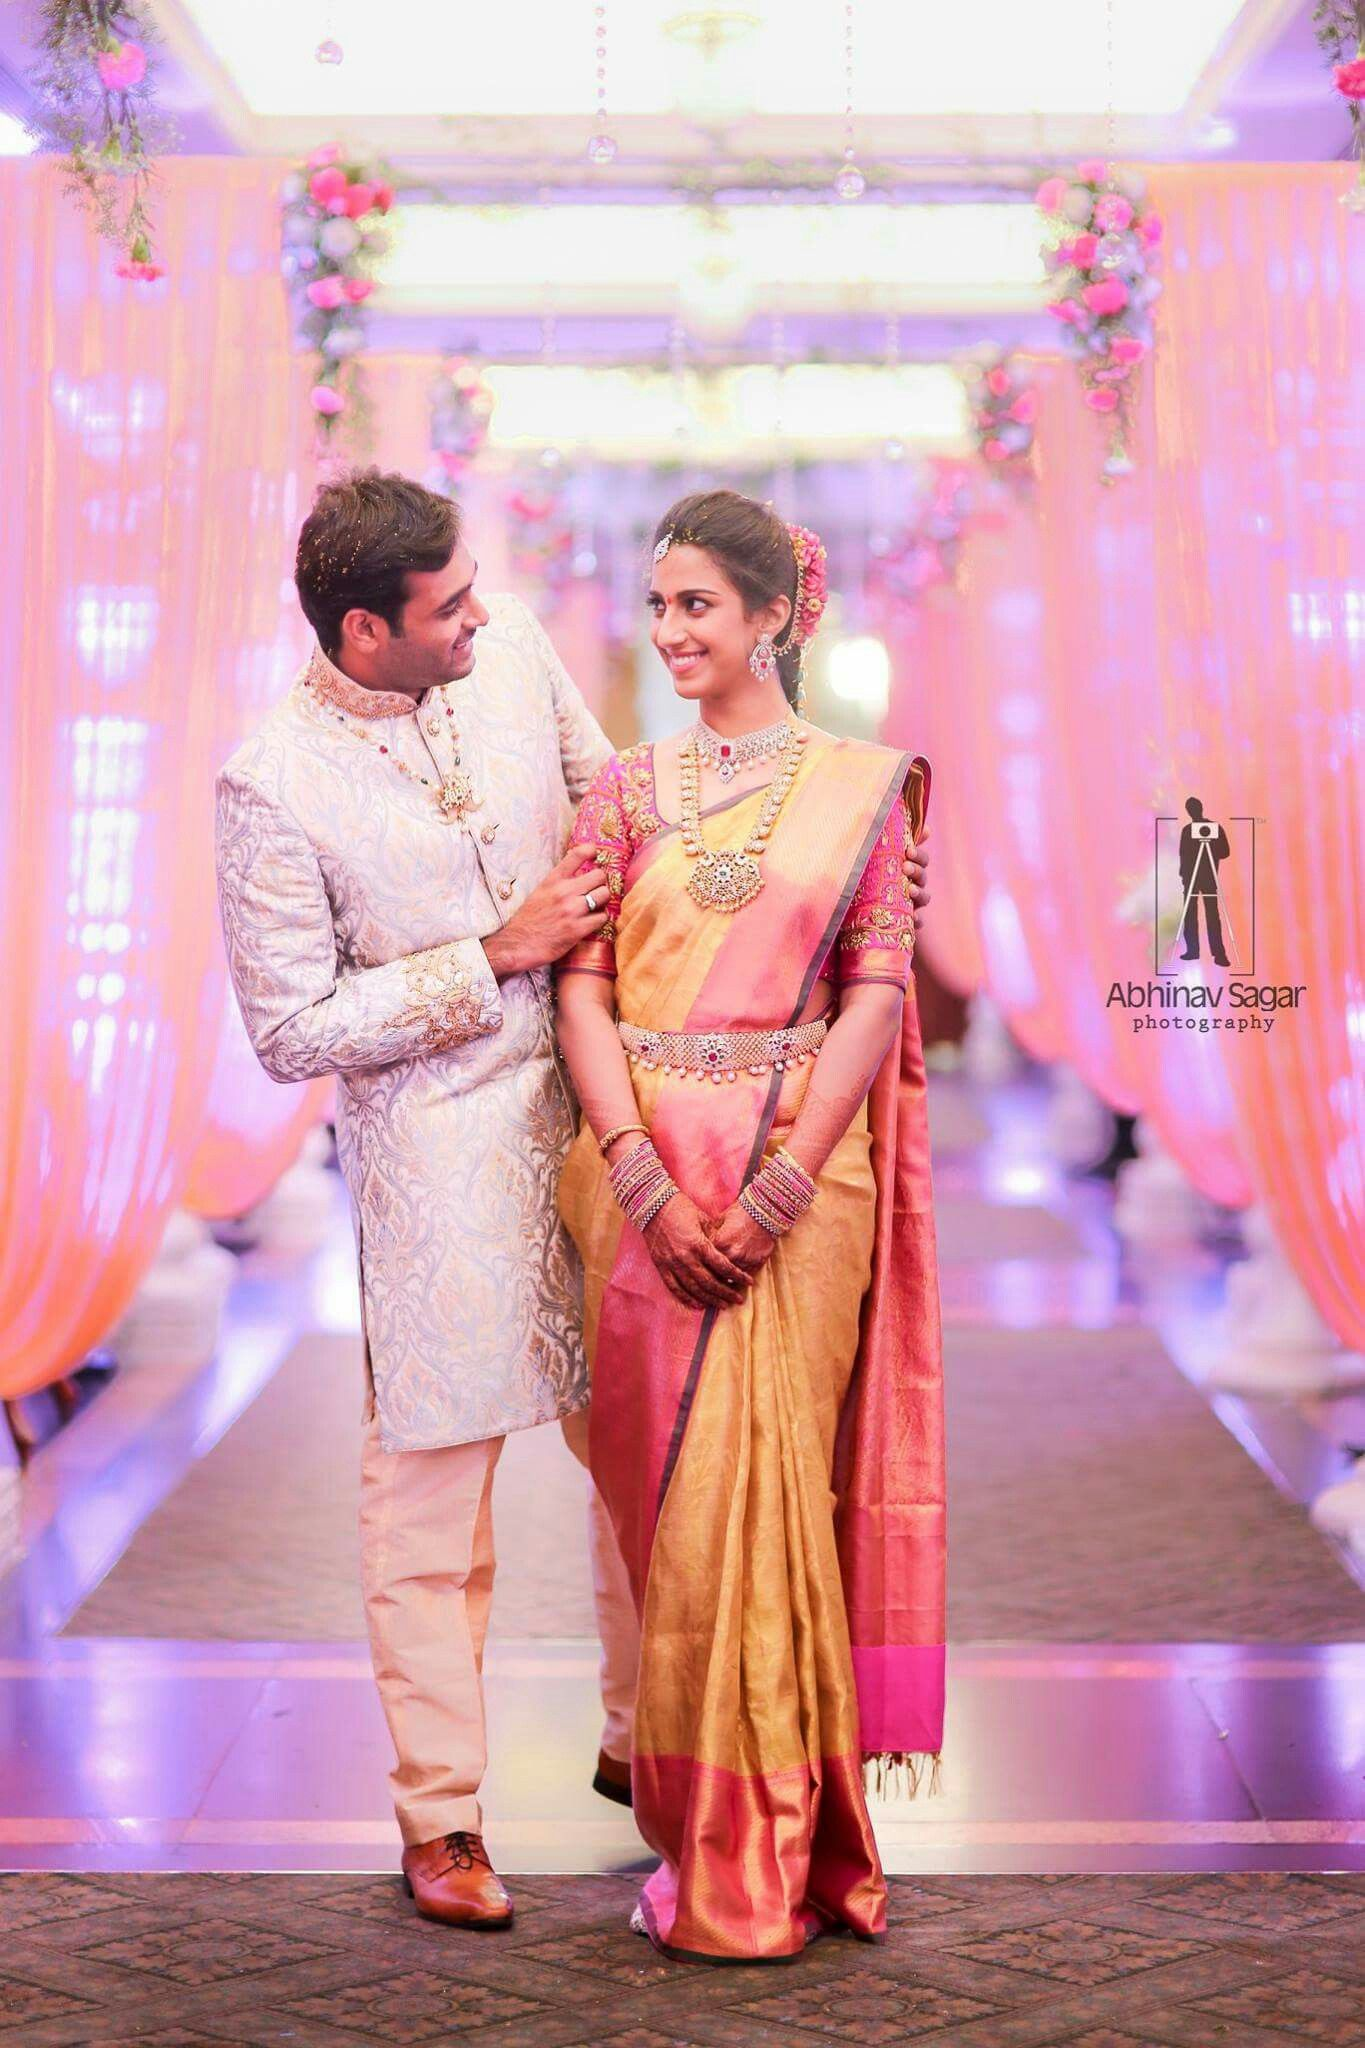 Pin By Amulya Kolla On Indian Jewellery Tradition And Wedding